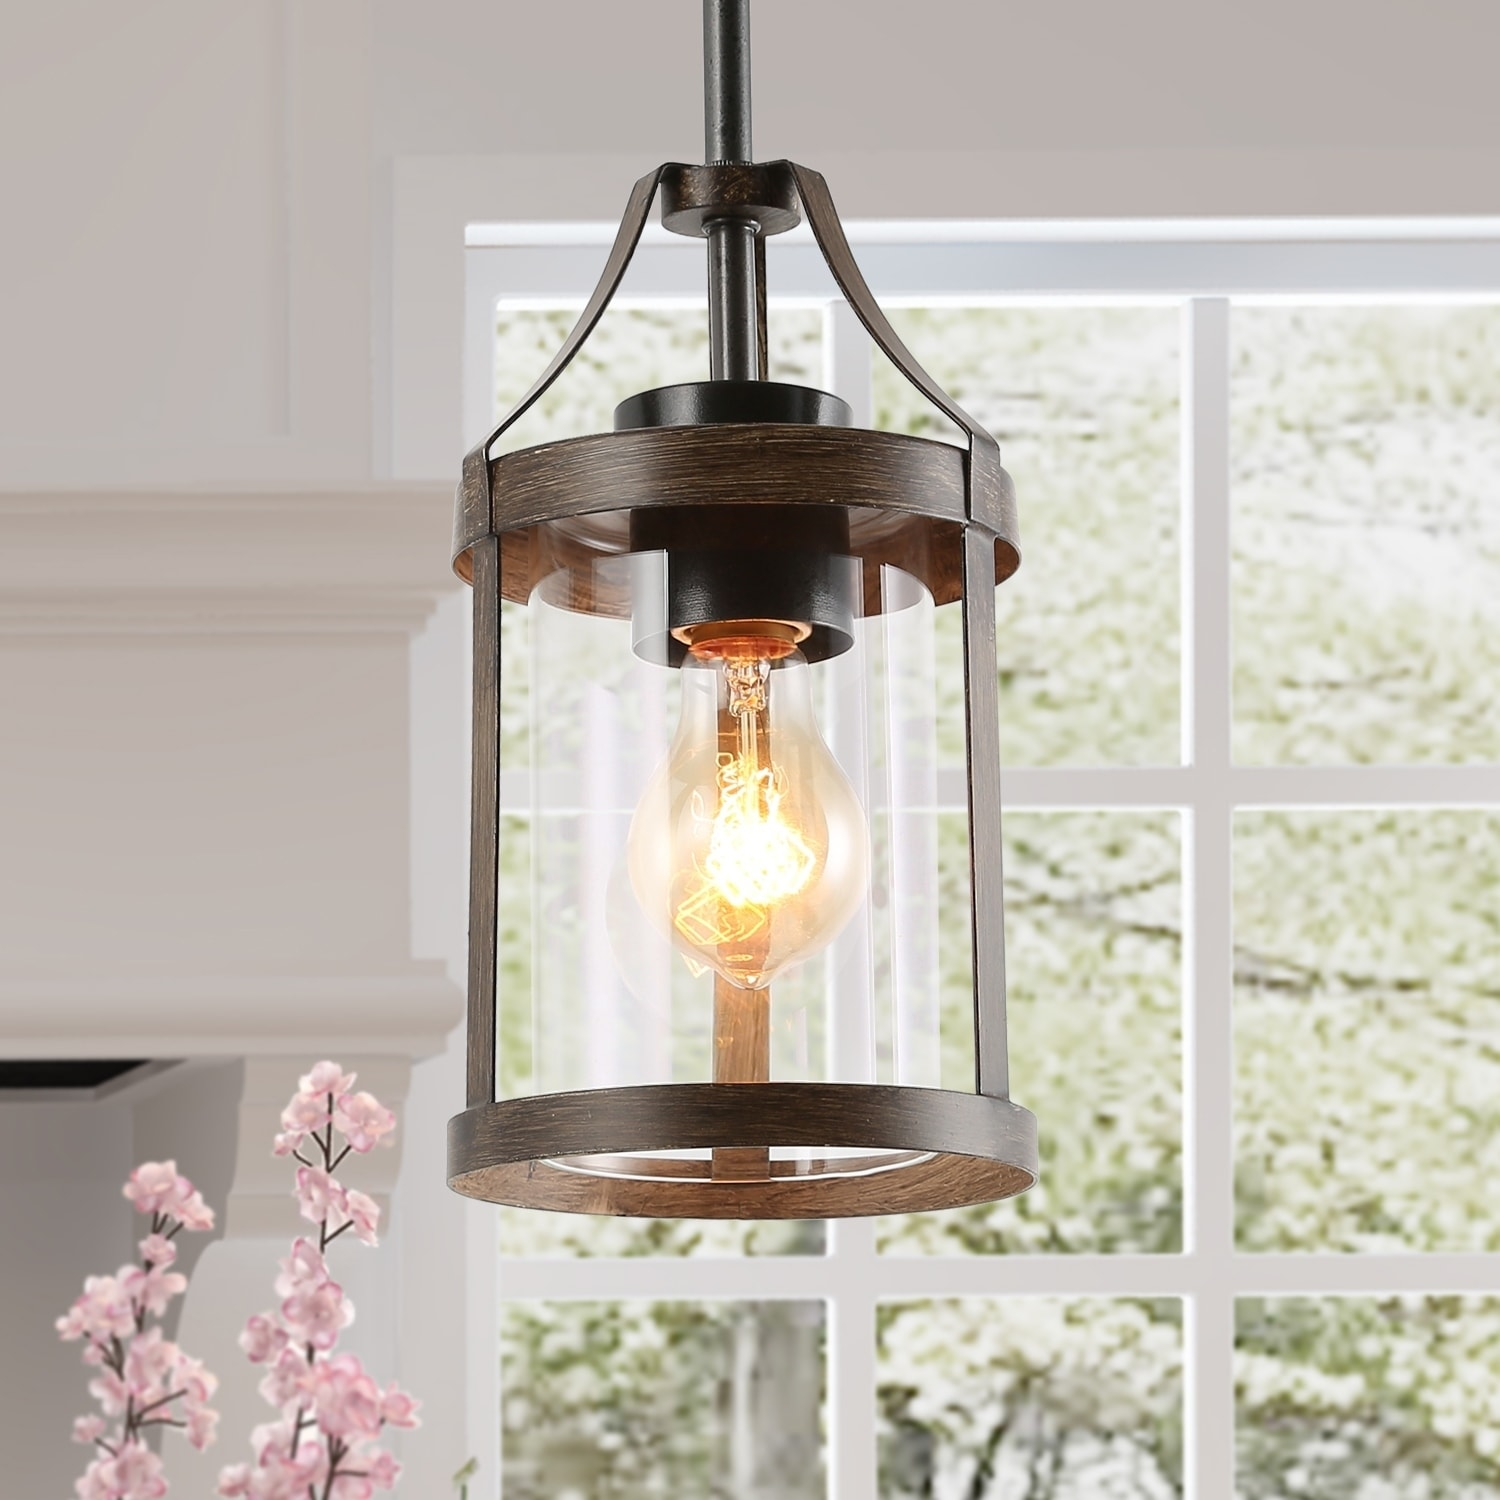 Rustic Pendant Lighting Bronze Hanging Ceilling Light For Kitchen Dining Room W6 Xh10 On Sale Overstock 29809169